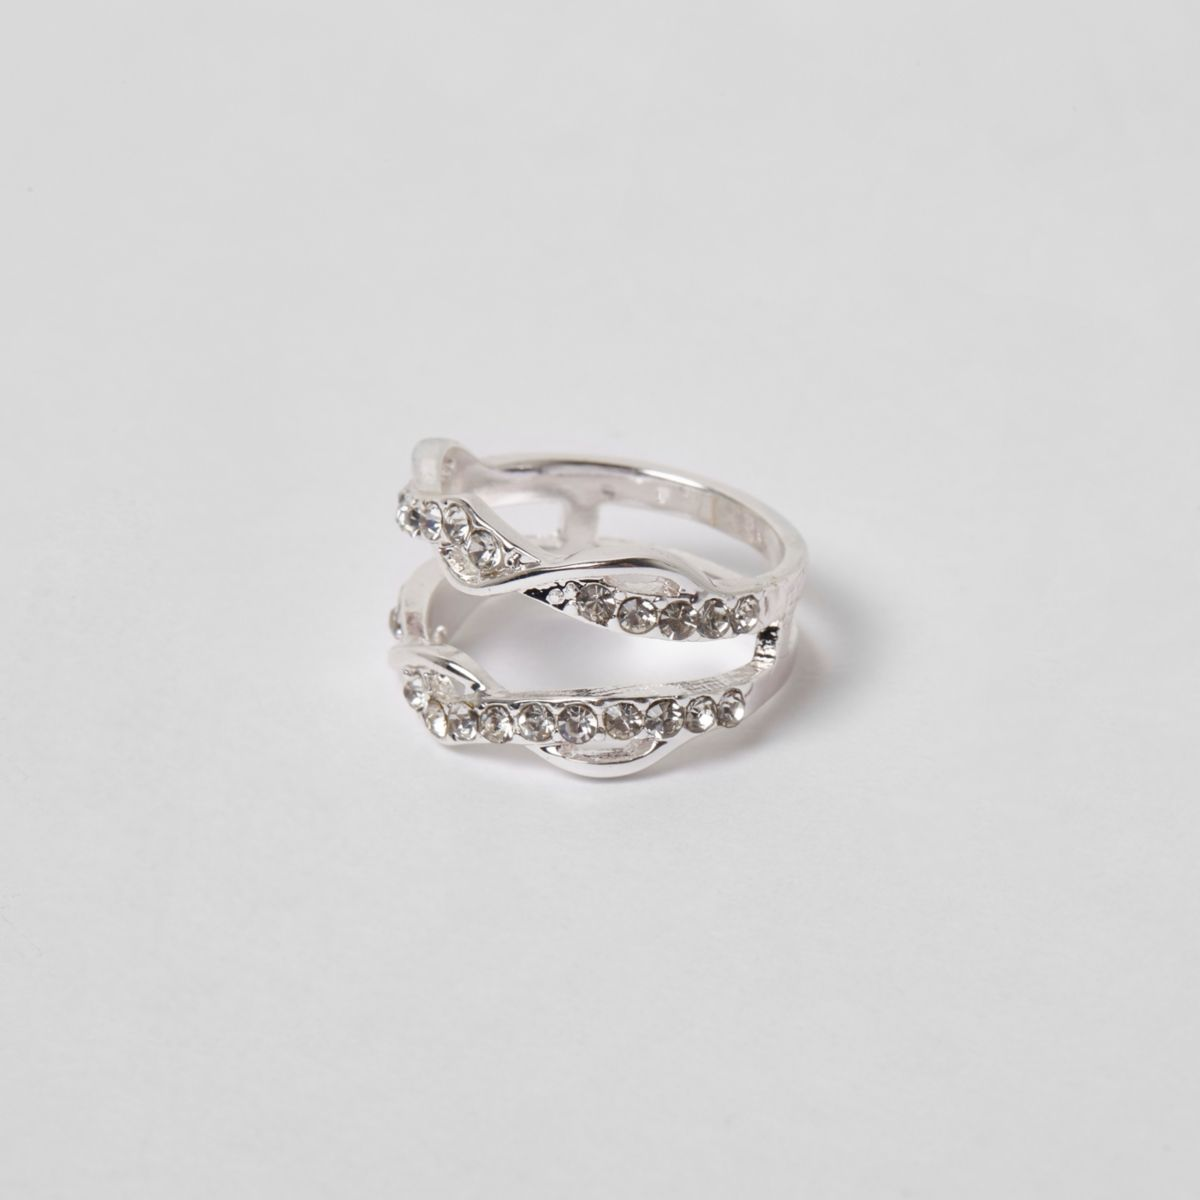 Silver tone diamante encrusted twist ring